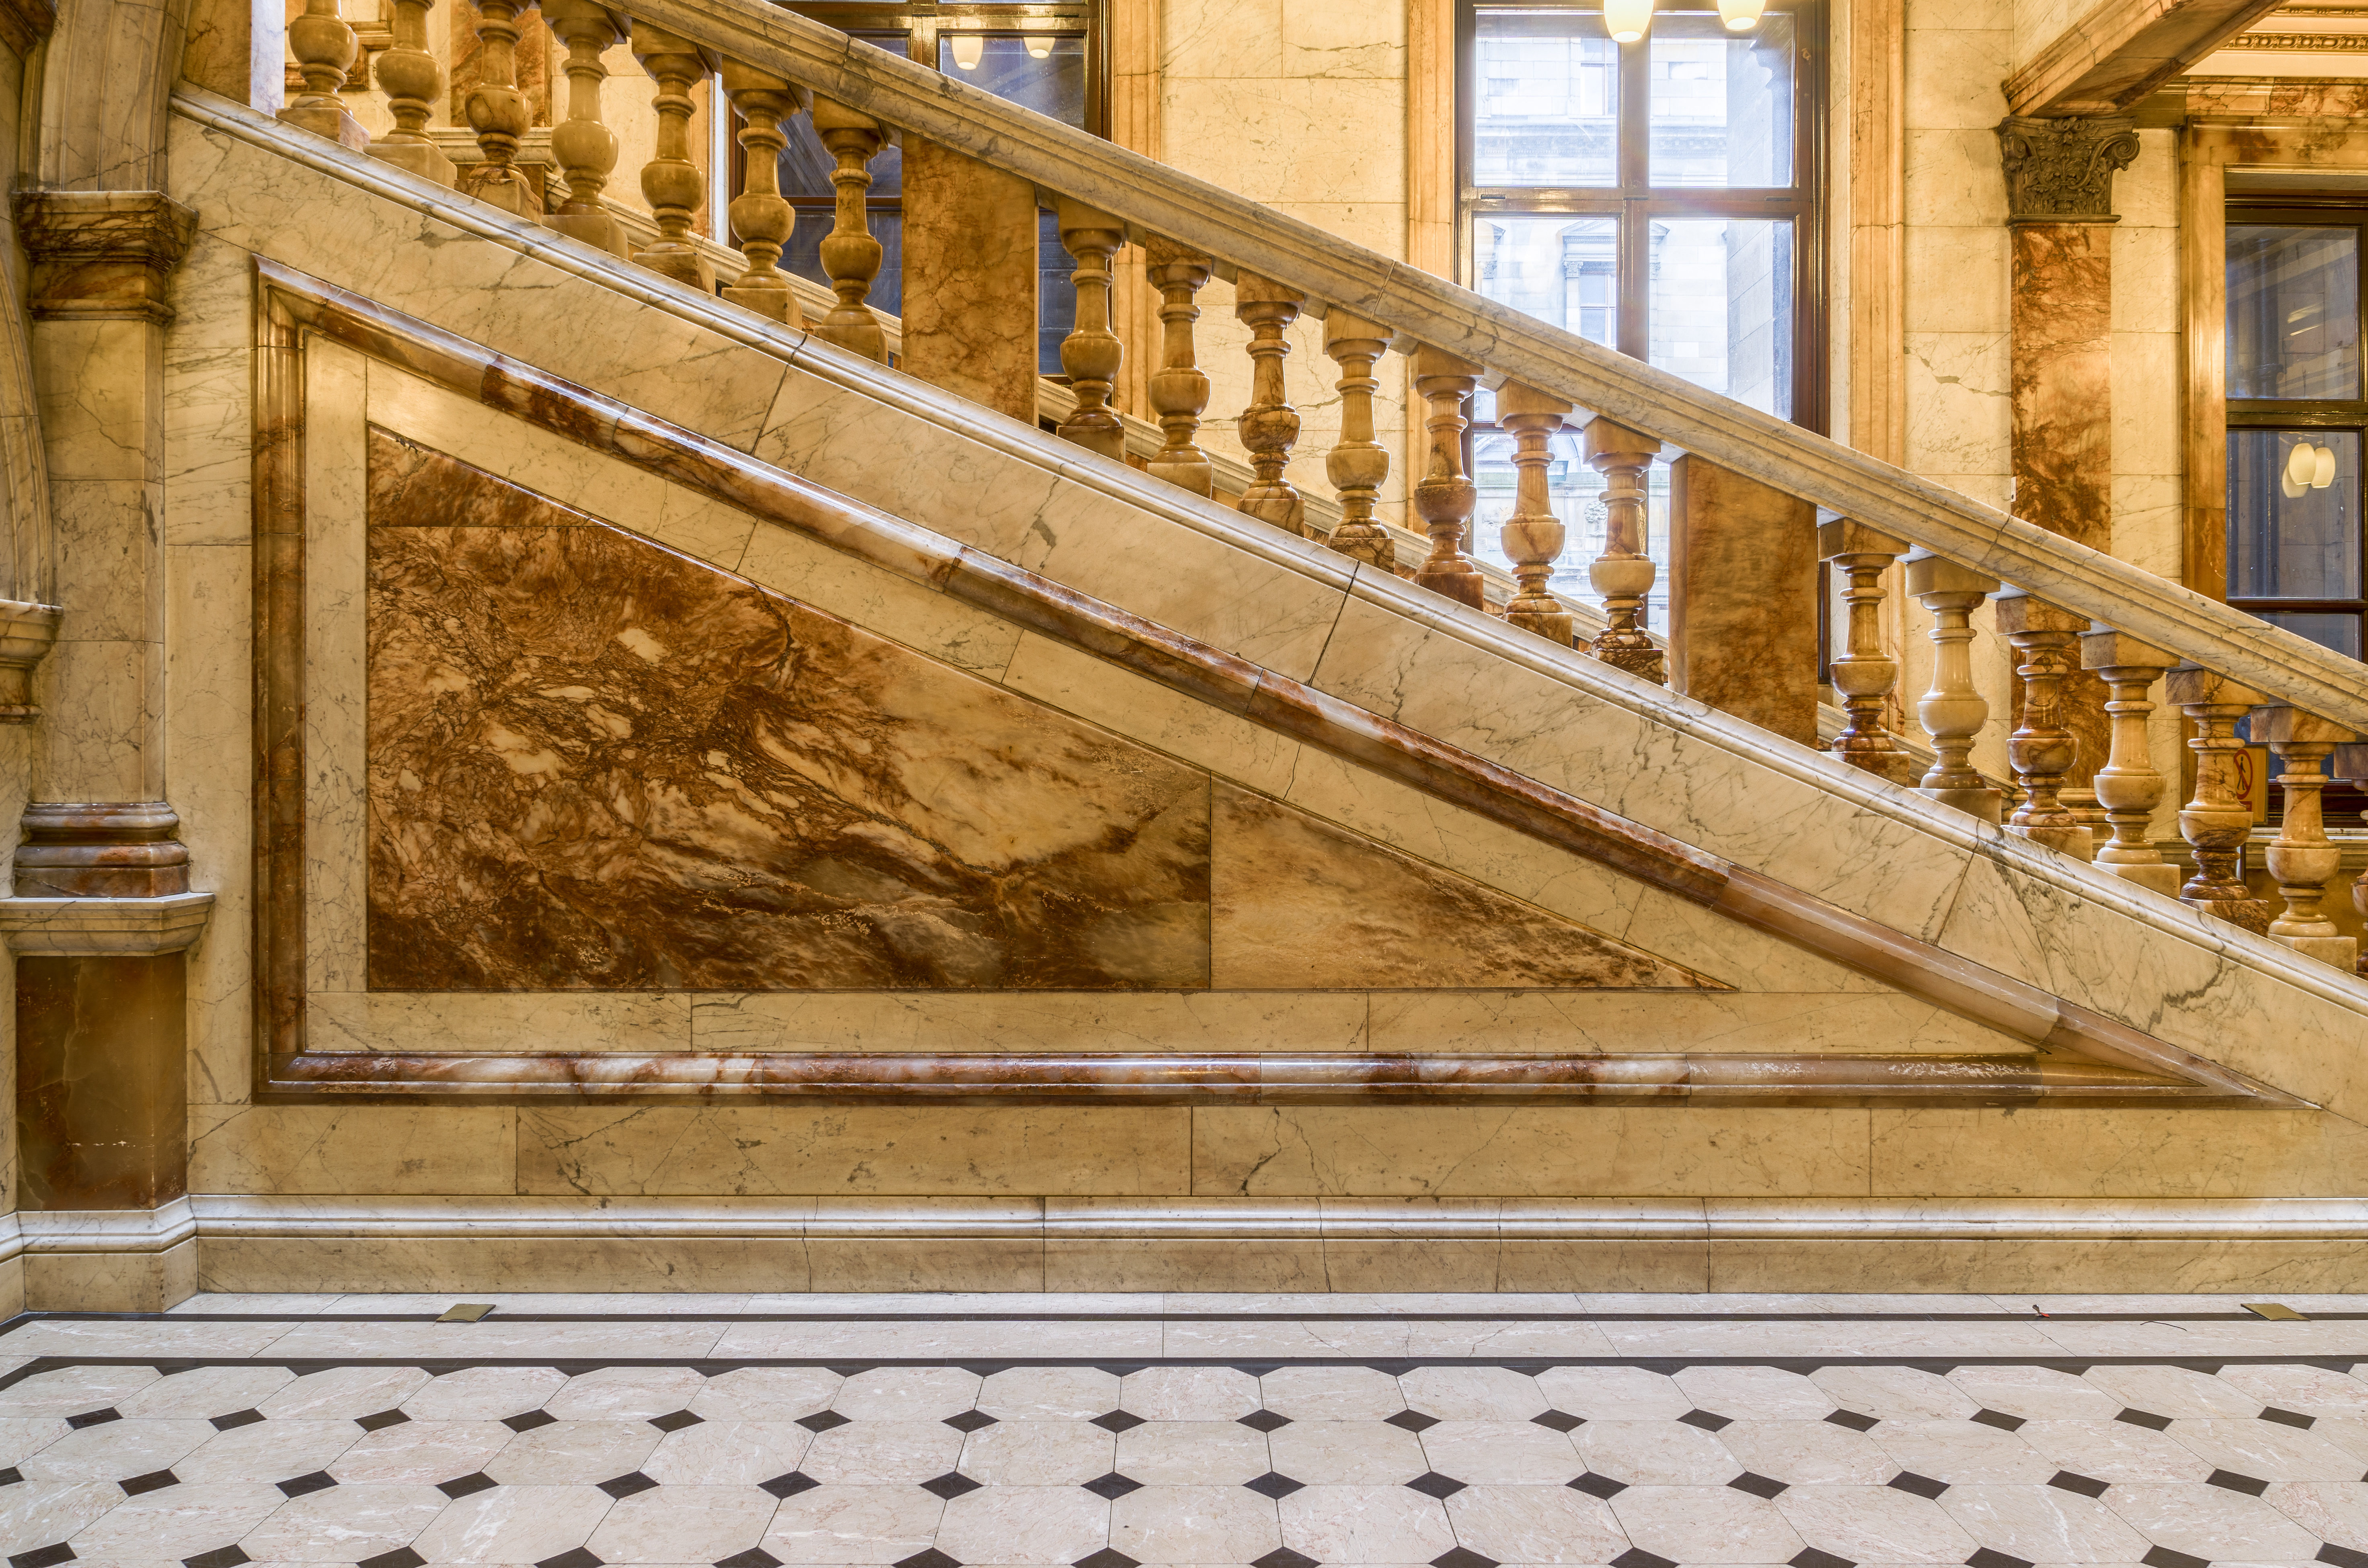 File:Glasgow City Chambers   Carrara Marble Staircase   2